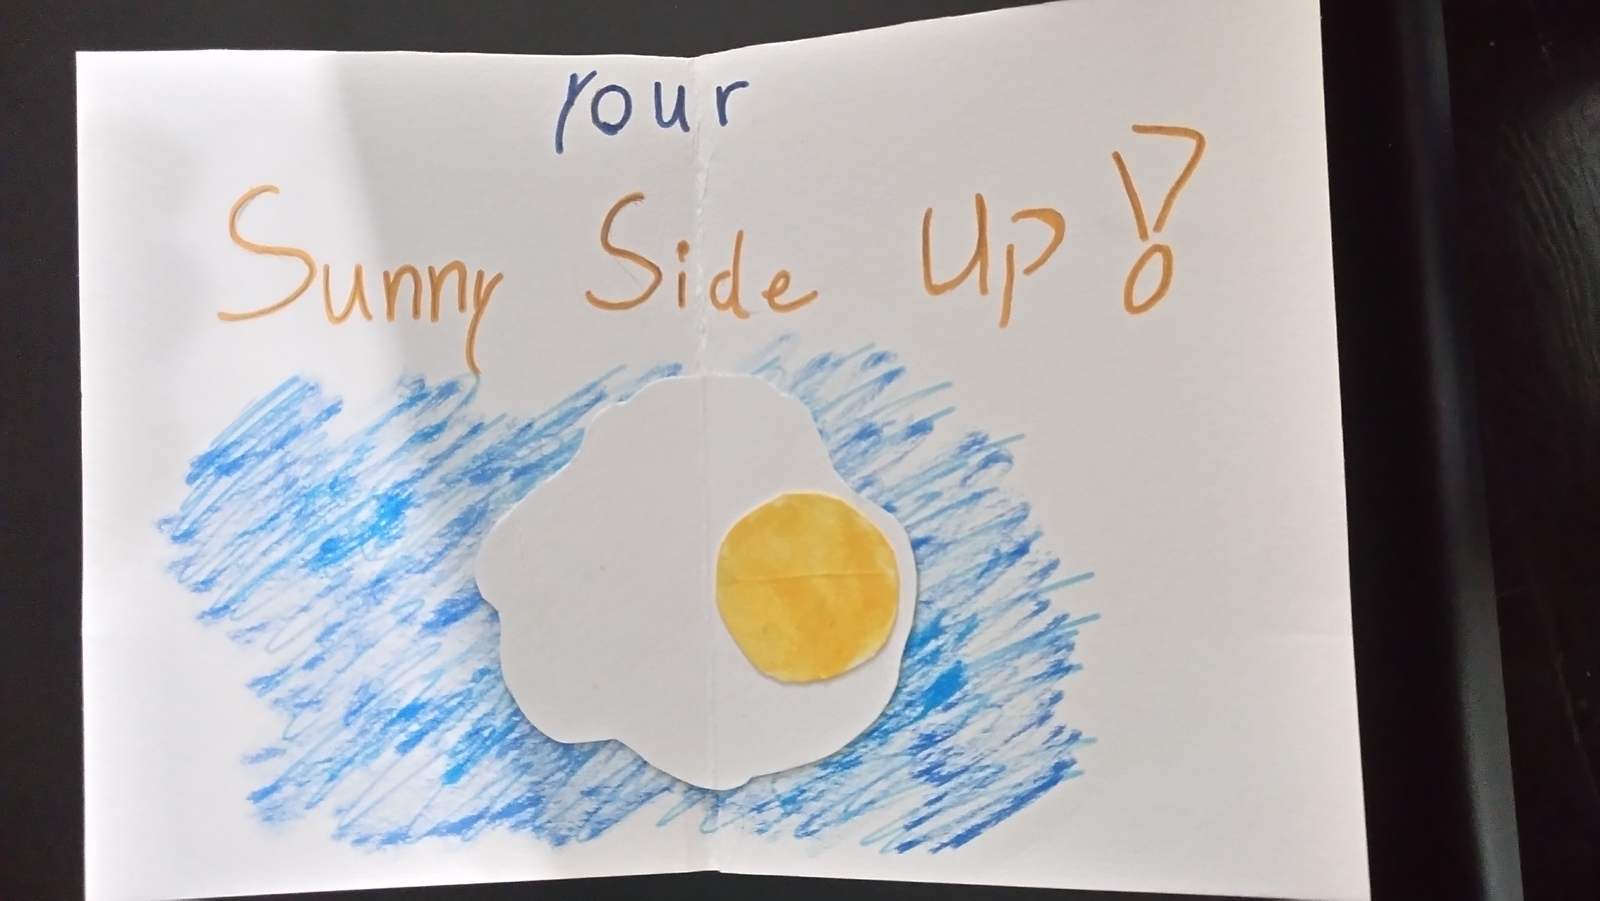 Sunny Side Up 2 from Stine.JPG